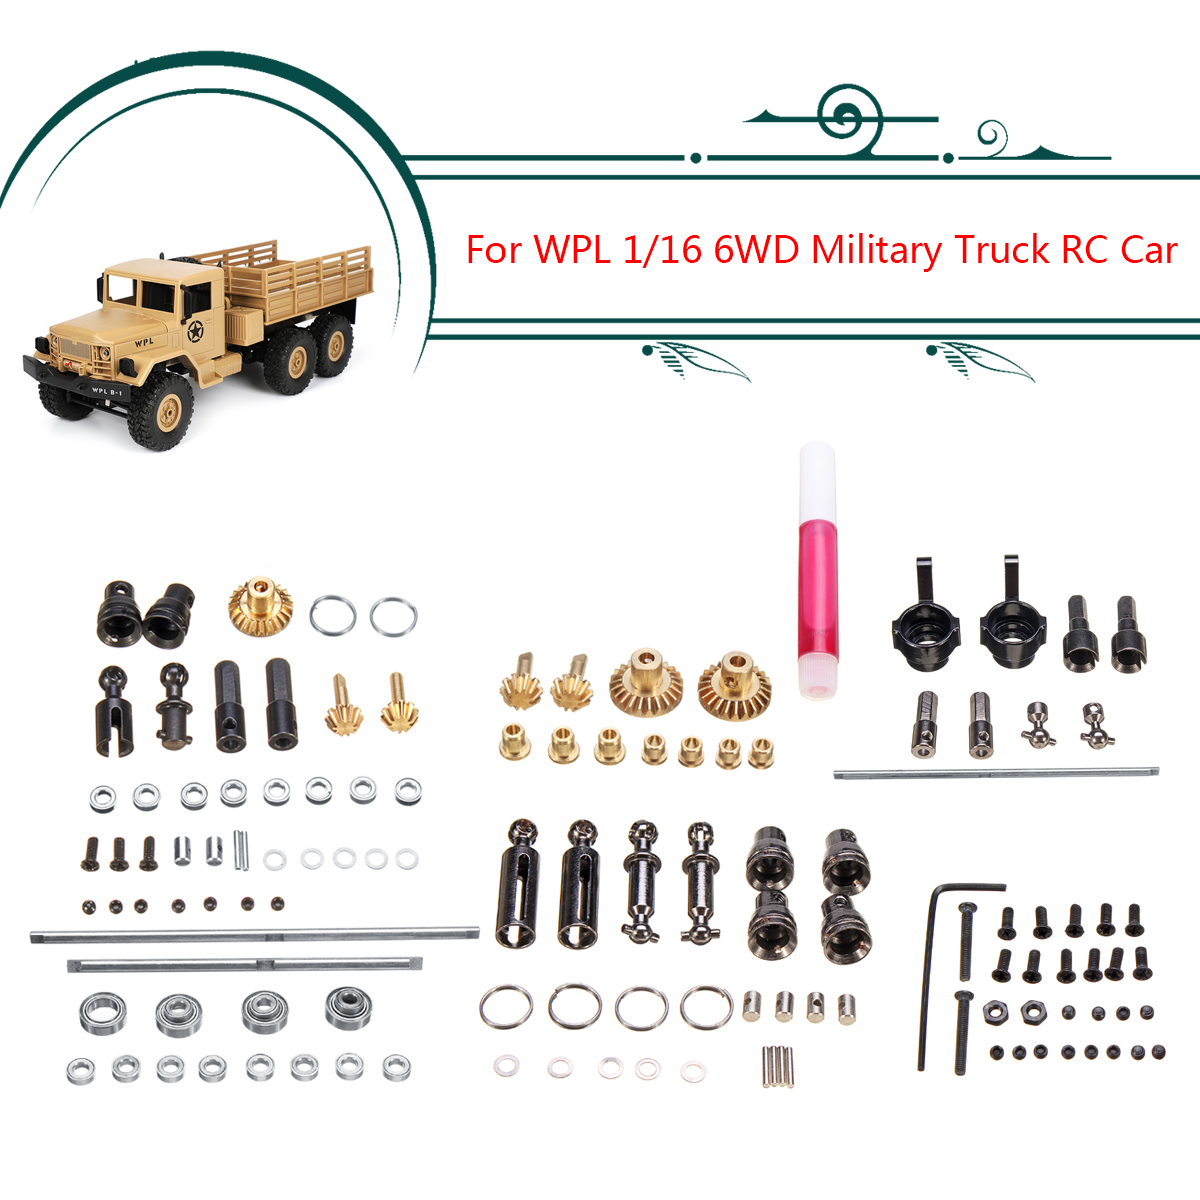 DIY Parts For WPL 1/16 6WD RC Car Military Truck Upgrade Metal OP Accessory Set Easy to Install Durable Metal & Plastic